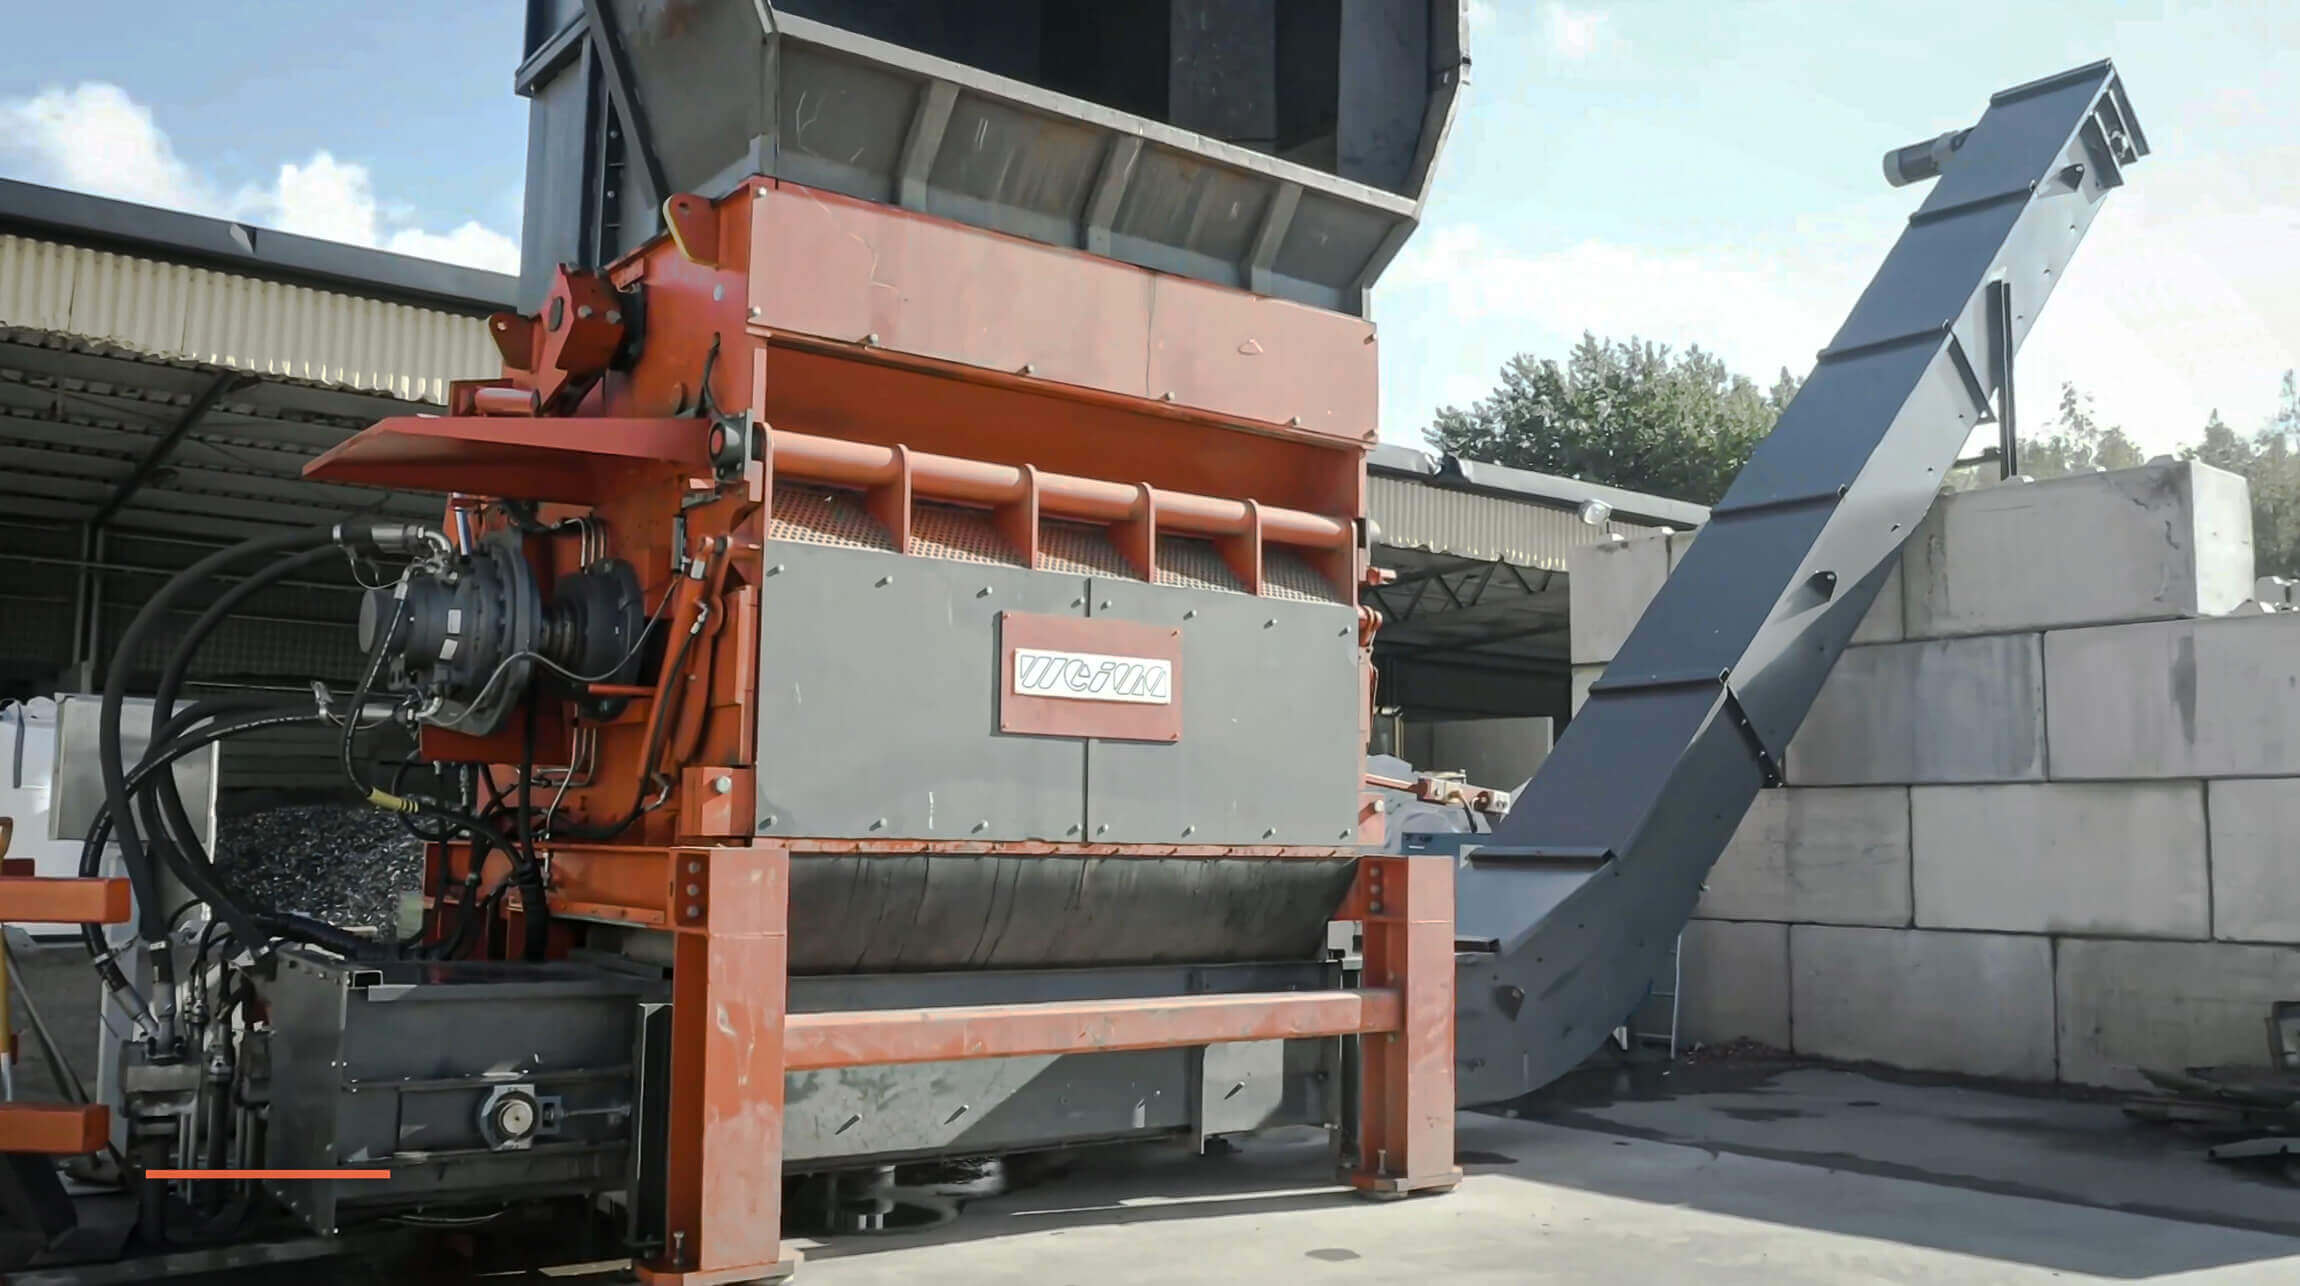 WEIMA PowerLine 2500 Kunststoff Abfall Shredder